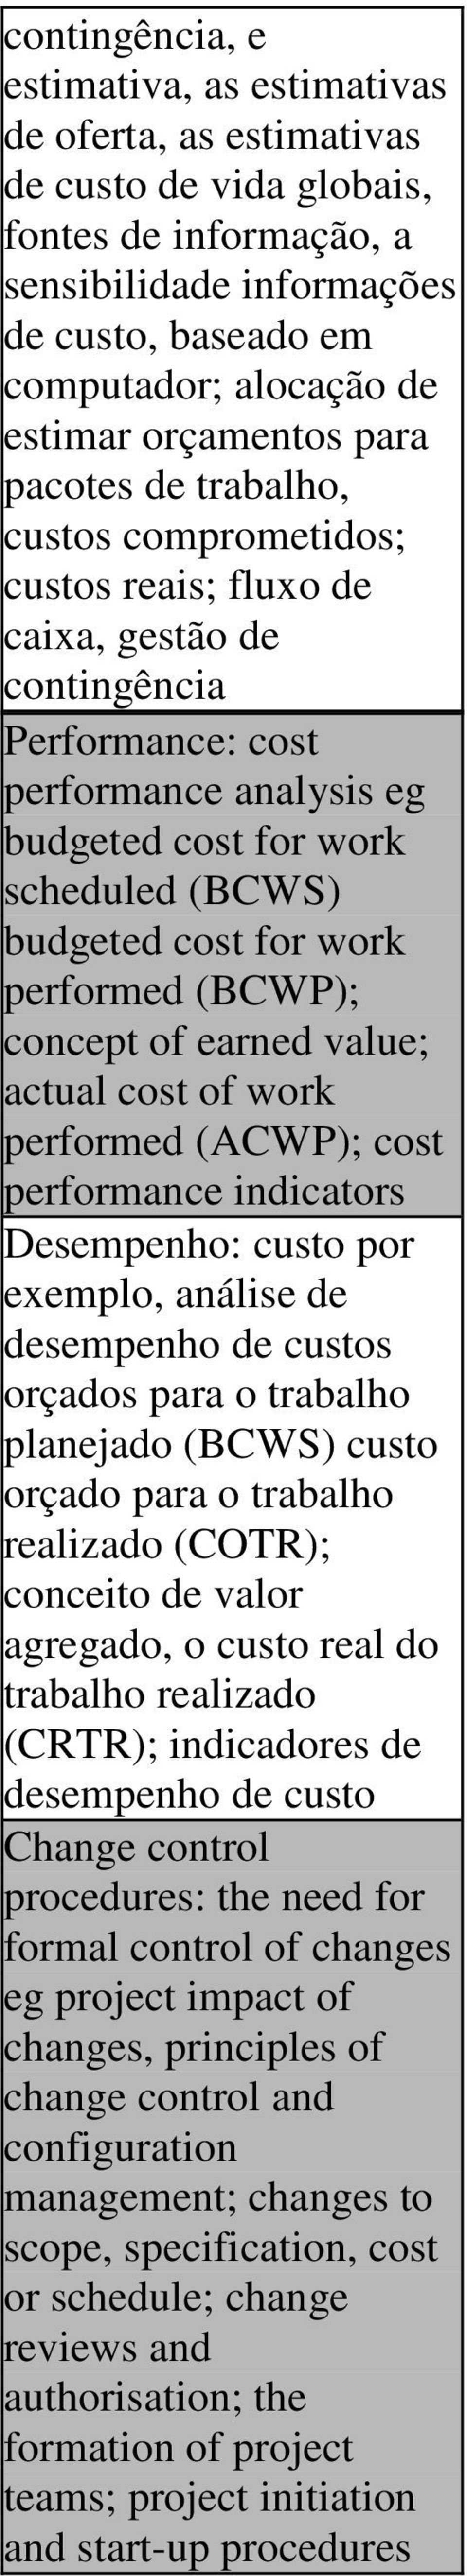 budgeted cost for work performed (BCWP); concept of earned value; actual cost of work performed (ACWP); cost performance indicators Desempenho: custo por exemplo, análise de desempenho de custos